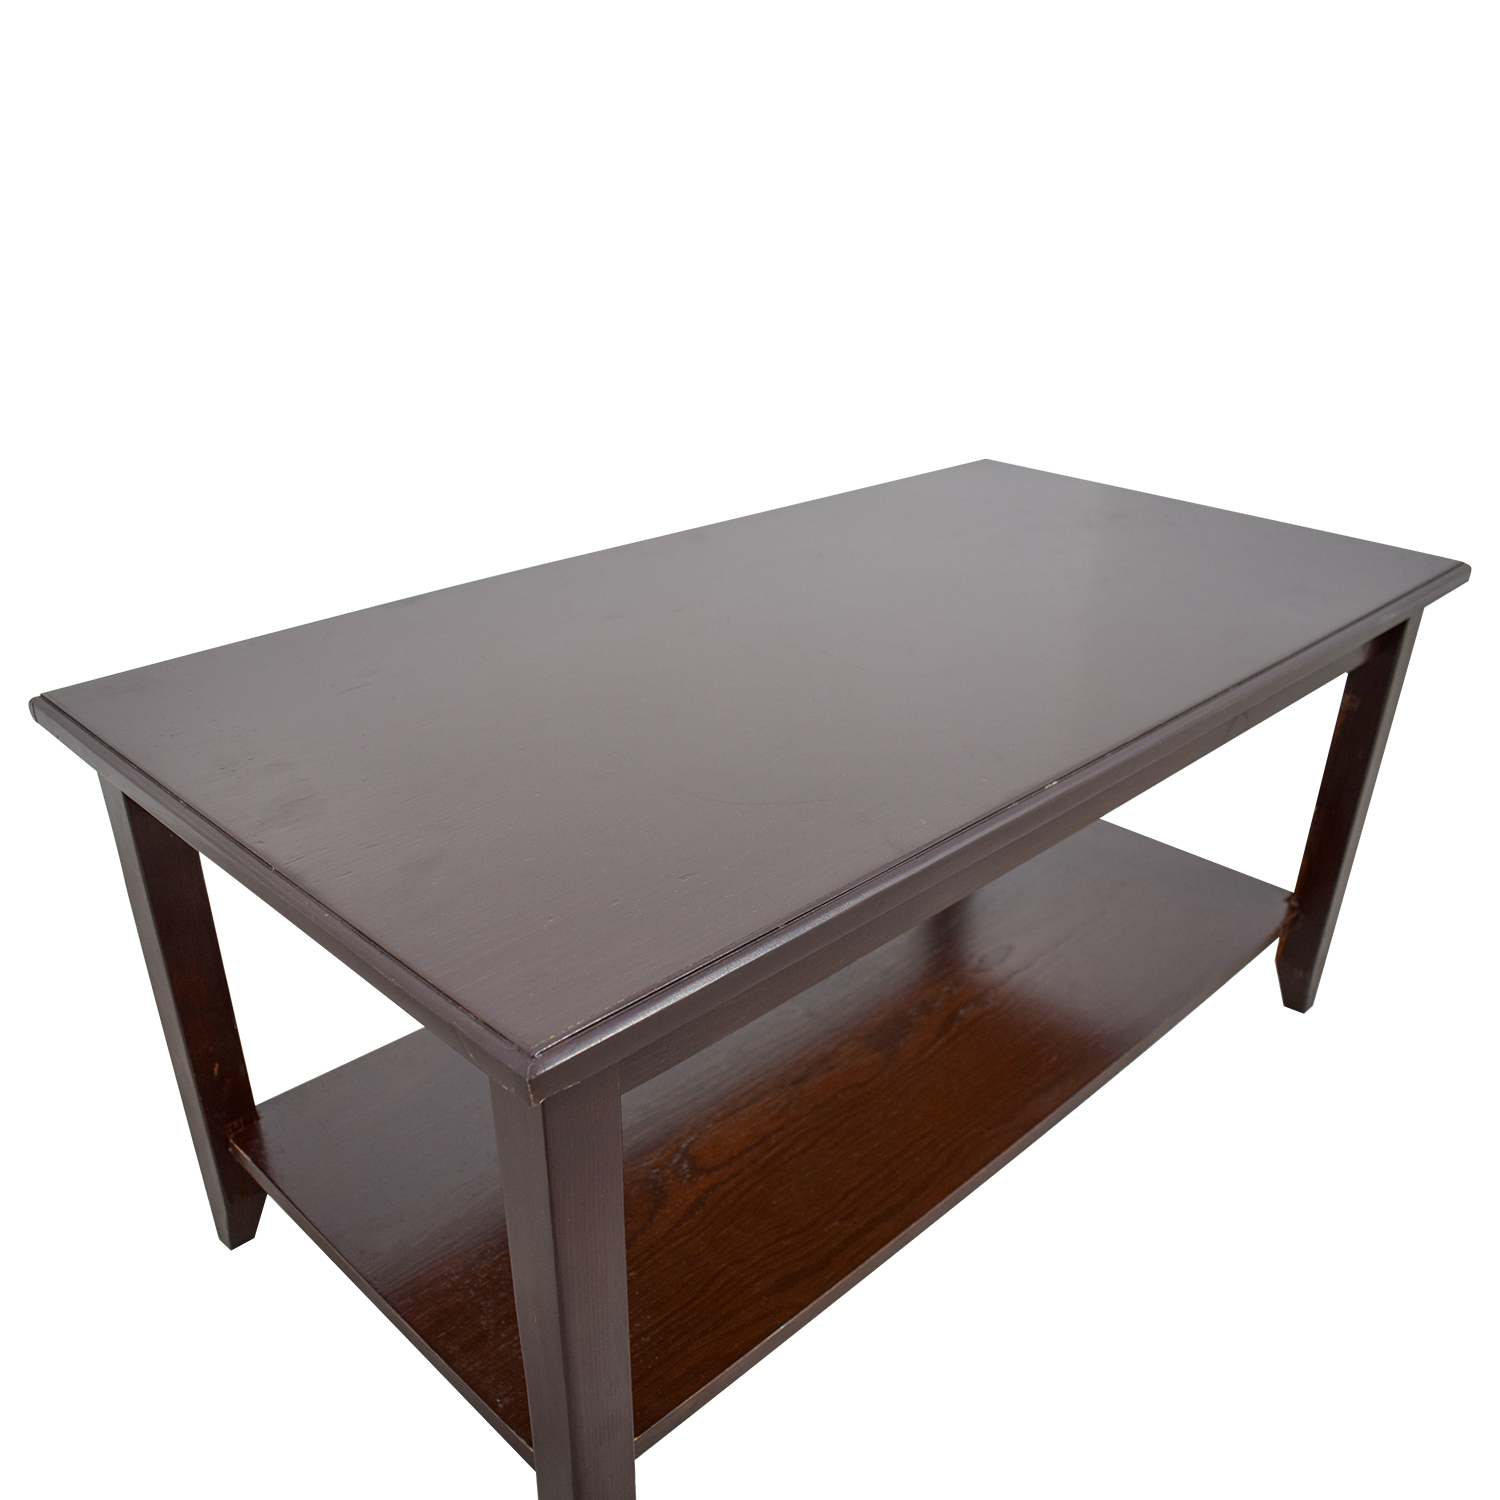 Gothic Furniture Gothic Furniture Coffee Table with Shelf second hand